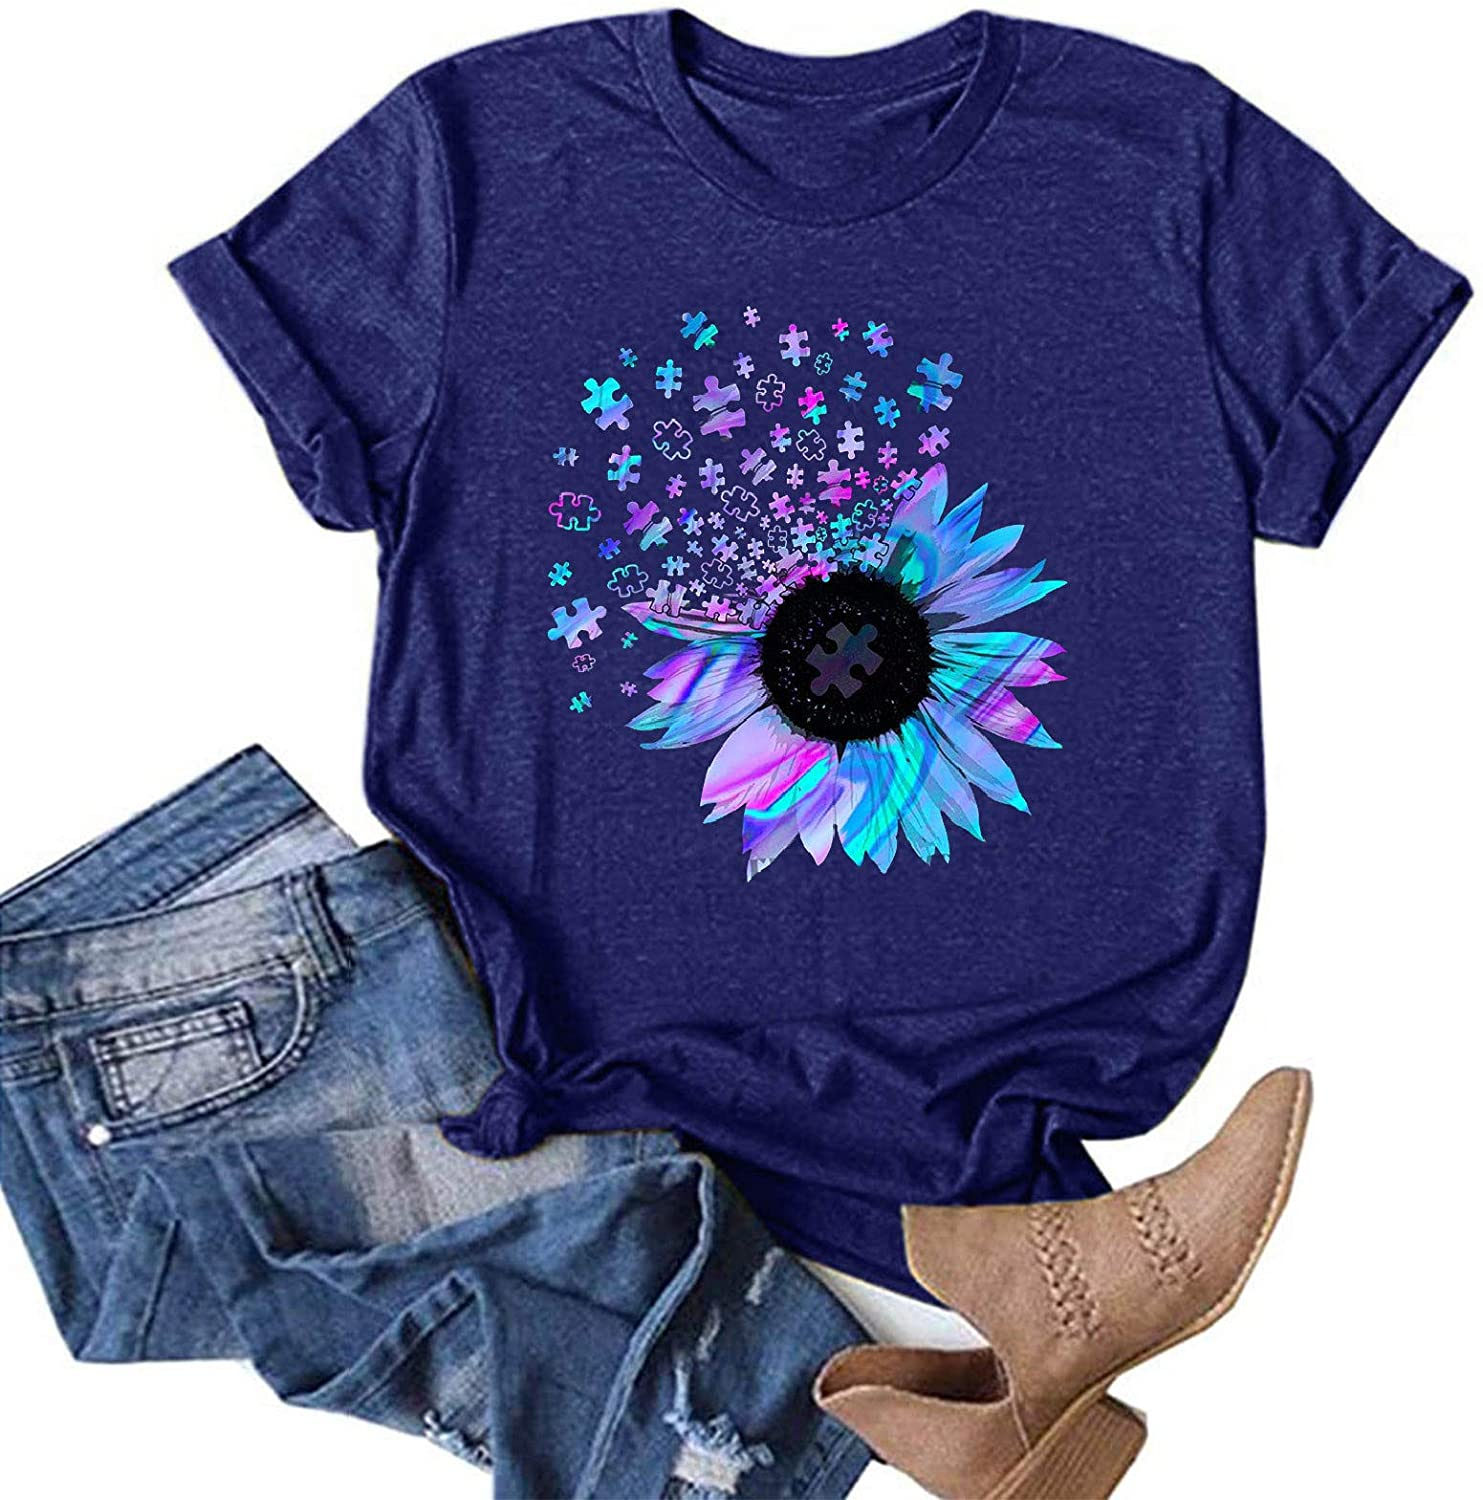 AODONG Womens Summer Tops Casual Short Sleeves Summer T-Shirts Sunflower Printing O Neck Blouse Graphic Tees Tops